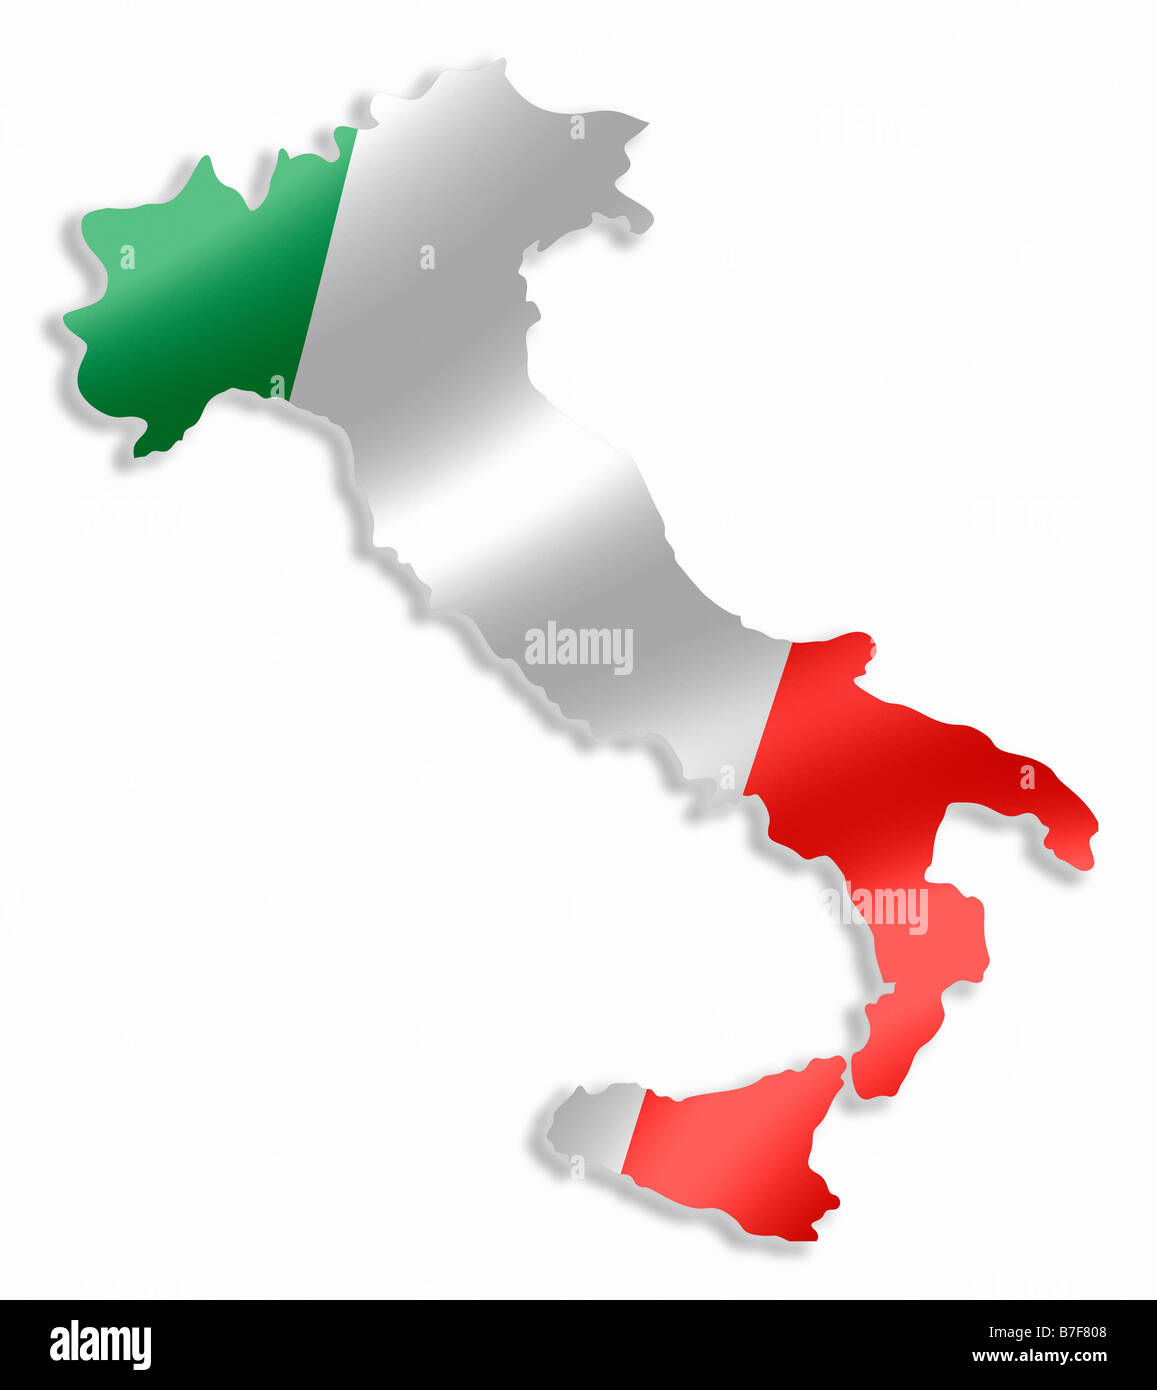 Map Of Italy Outline.Italy Italian Country Map Outline With National Flag Inside Stock